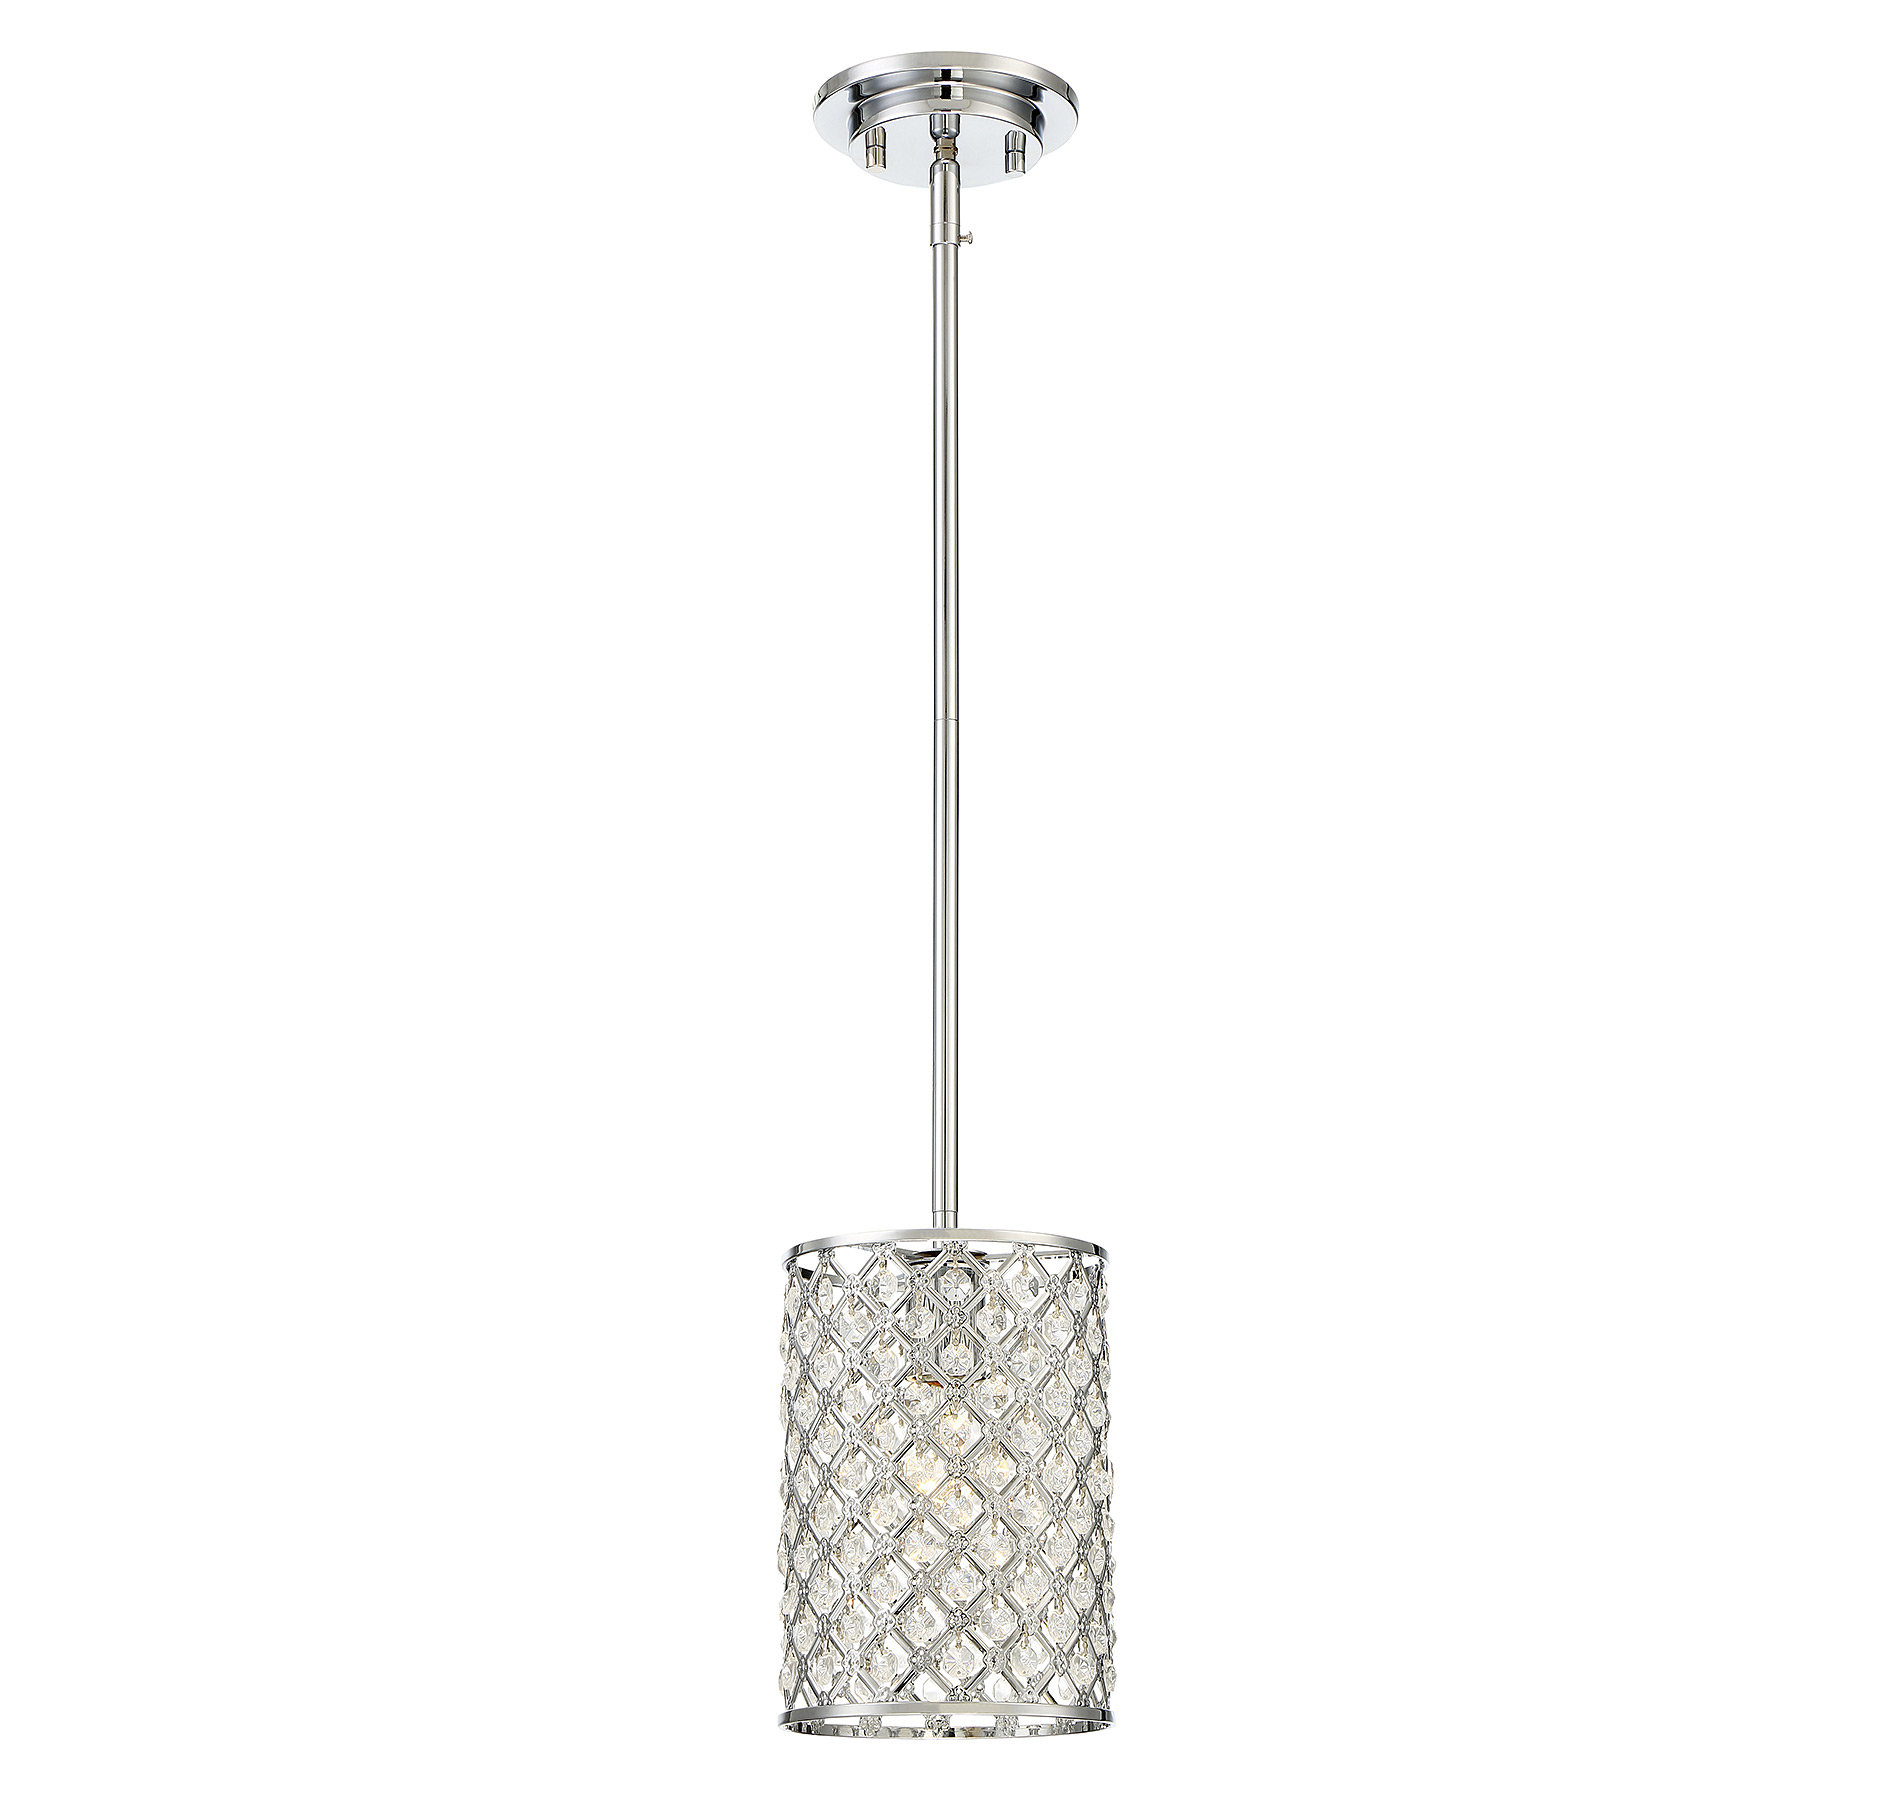 Araujo 1-Light Single Cylinder Pendant intended for Hermione 1-Light Single Drum Pendants (Image 2 of 30)